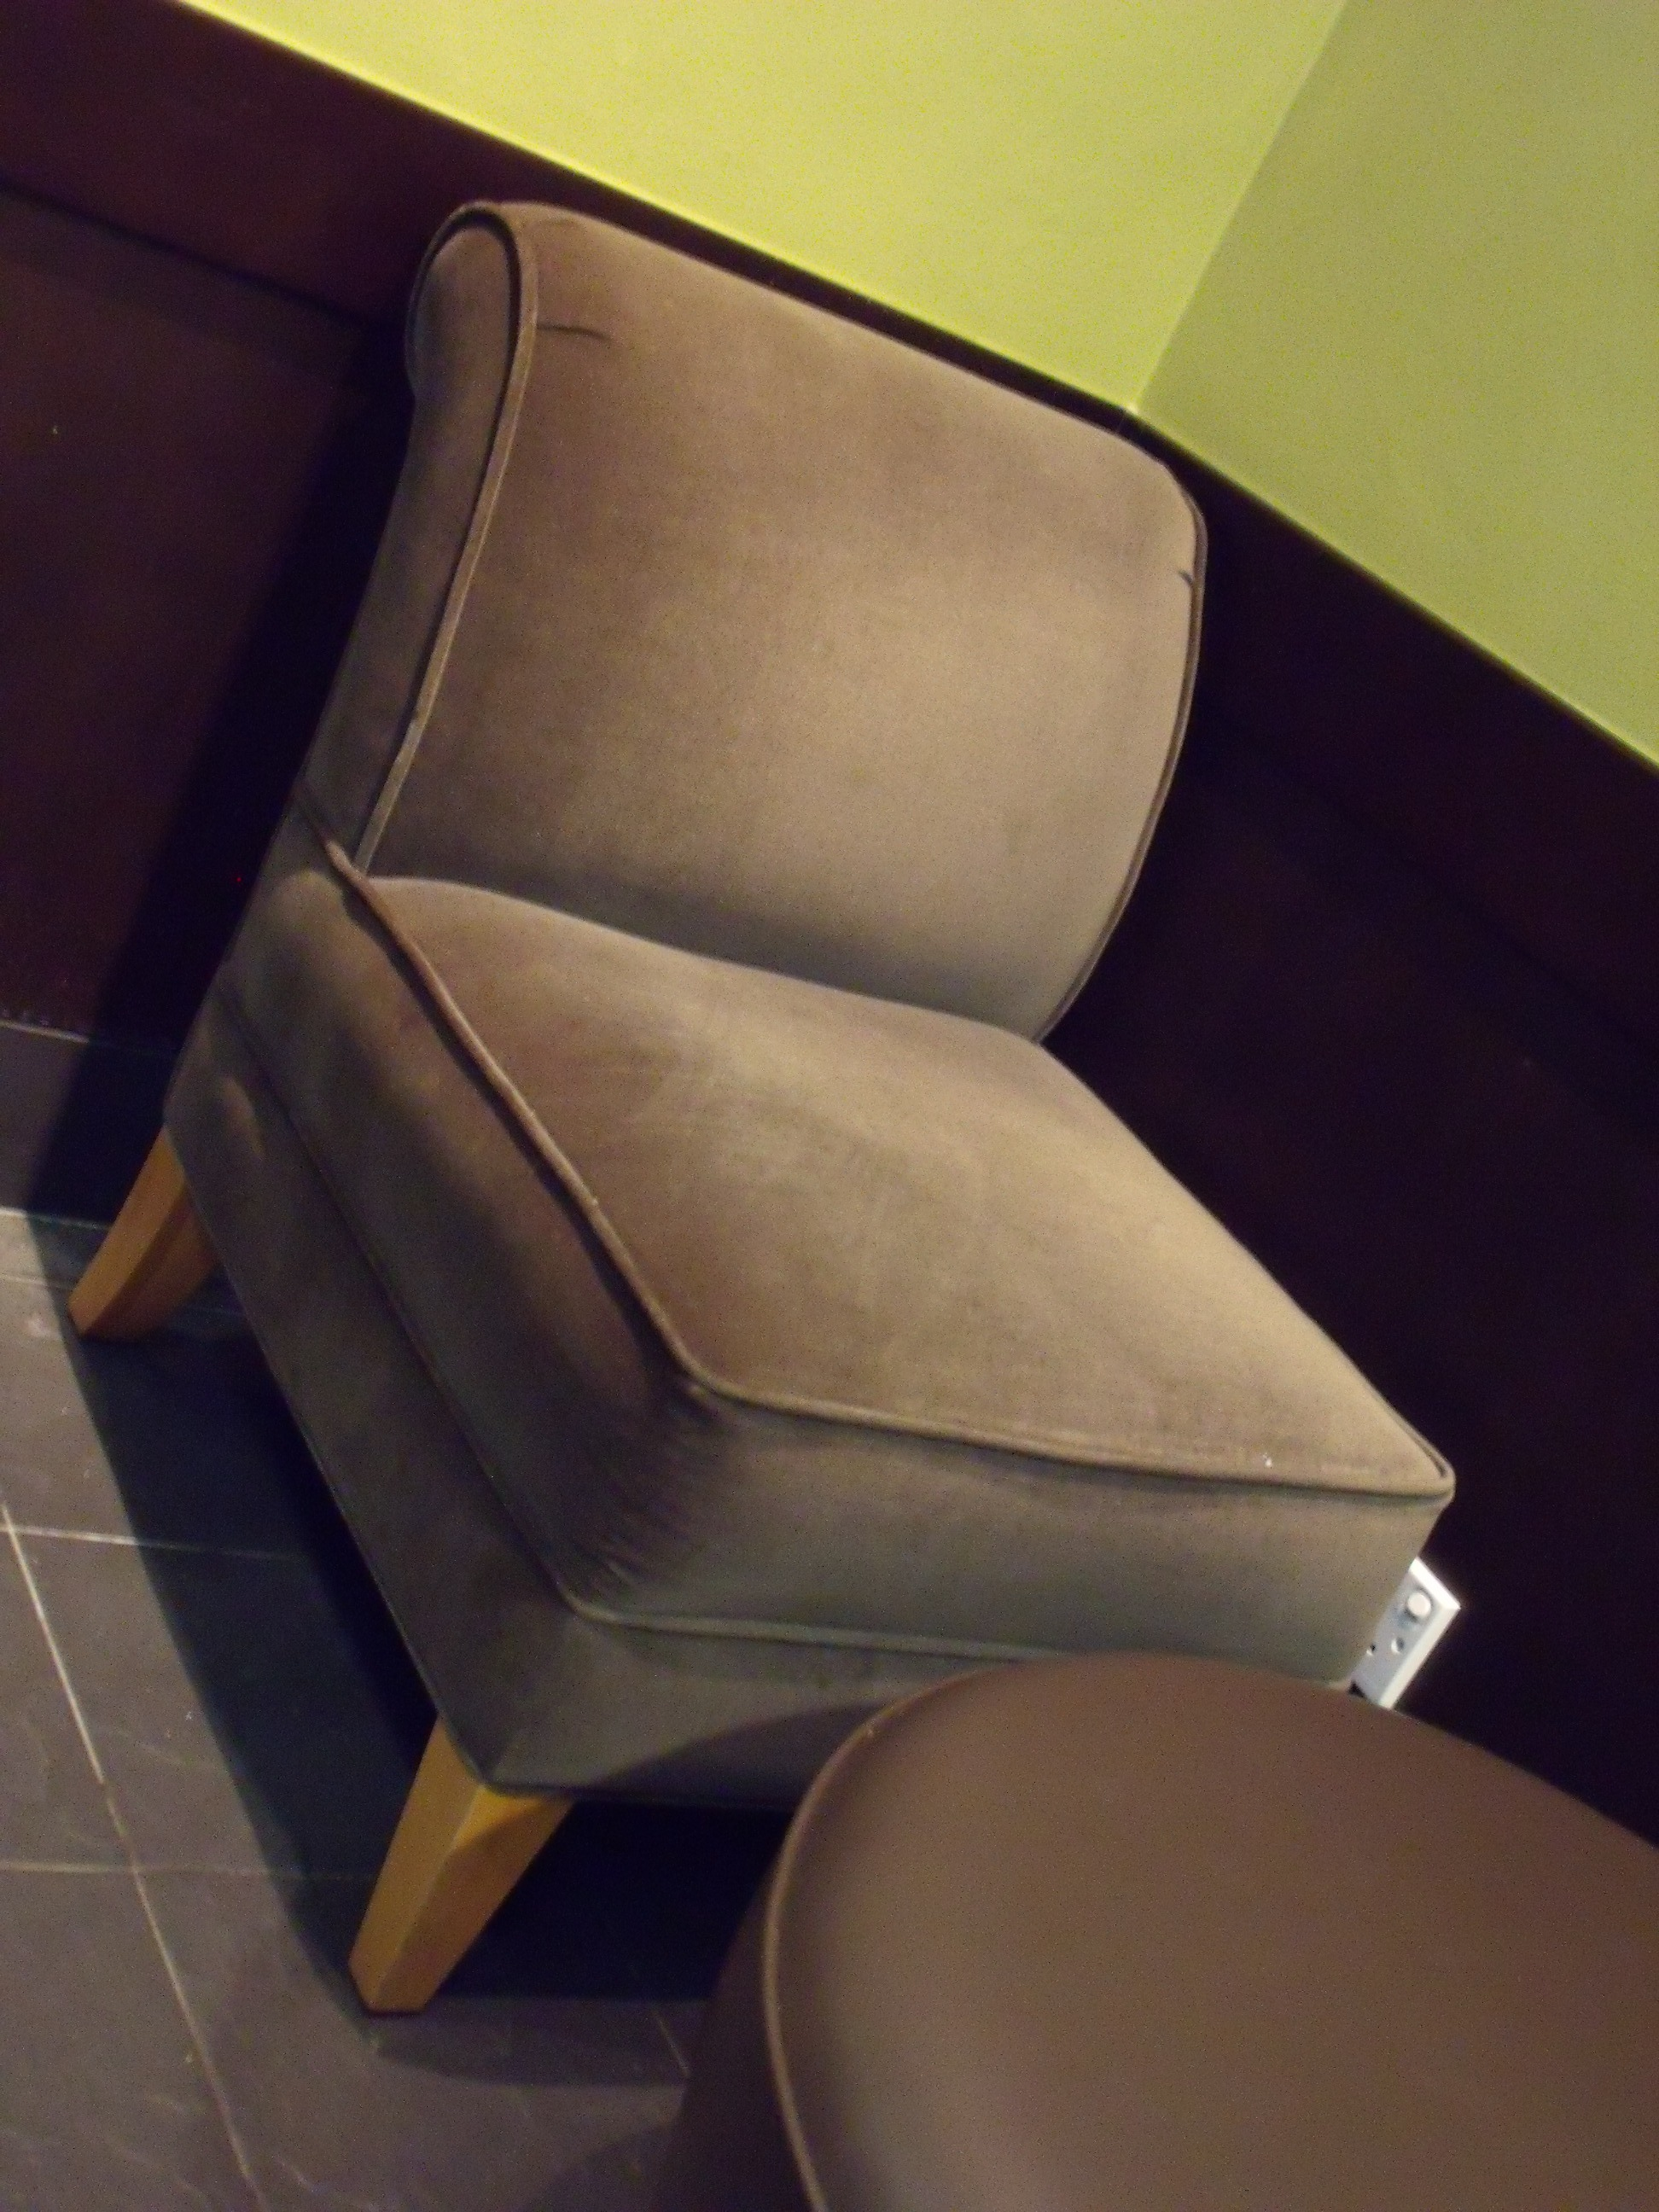 File:Easy Chair In A Singapore Starbucks